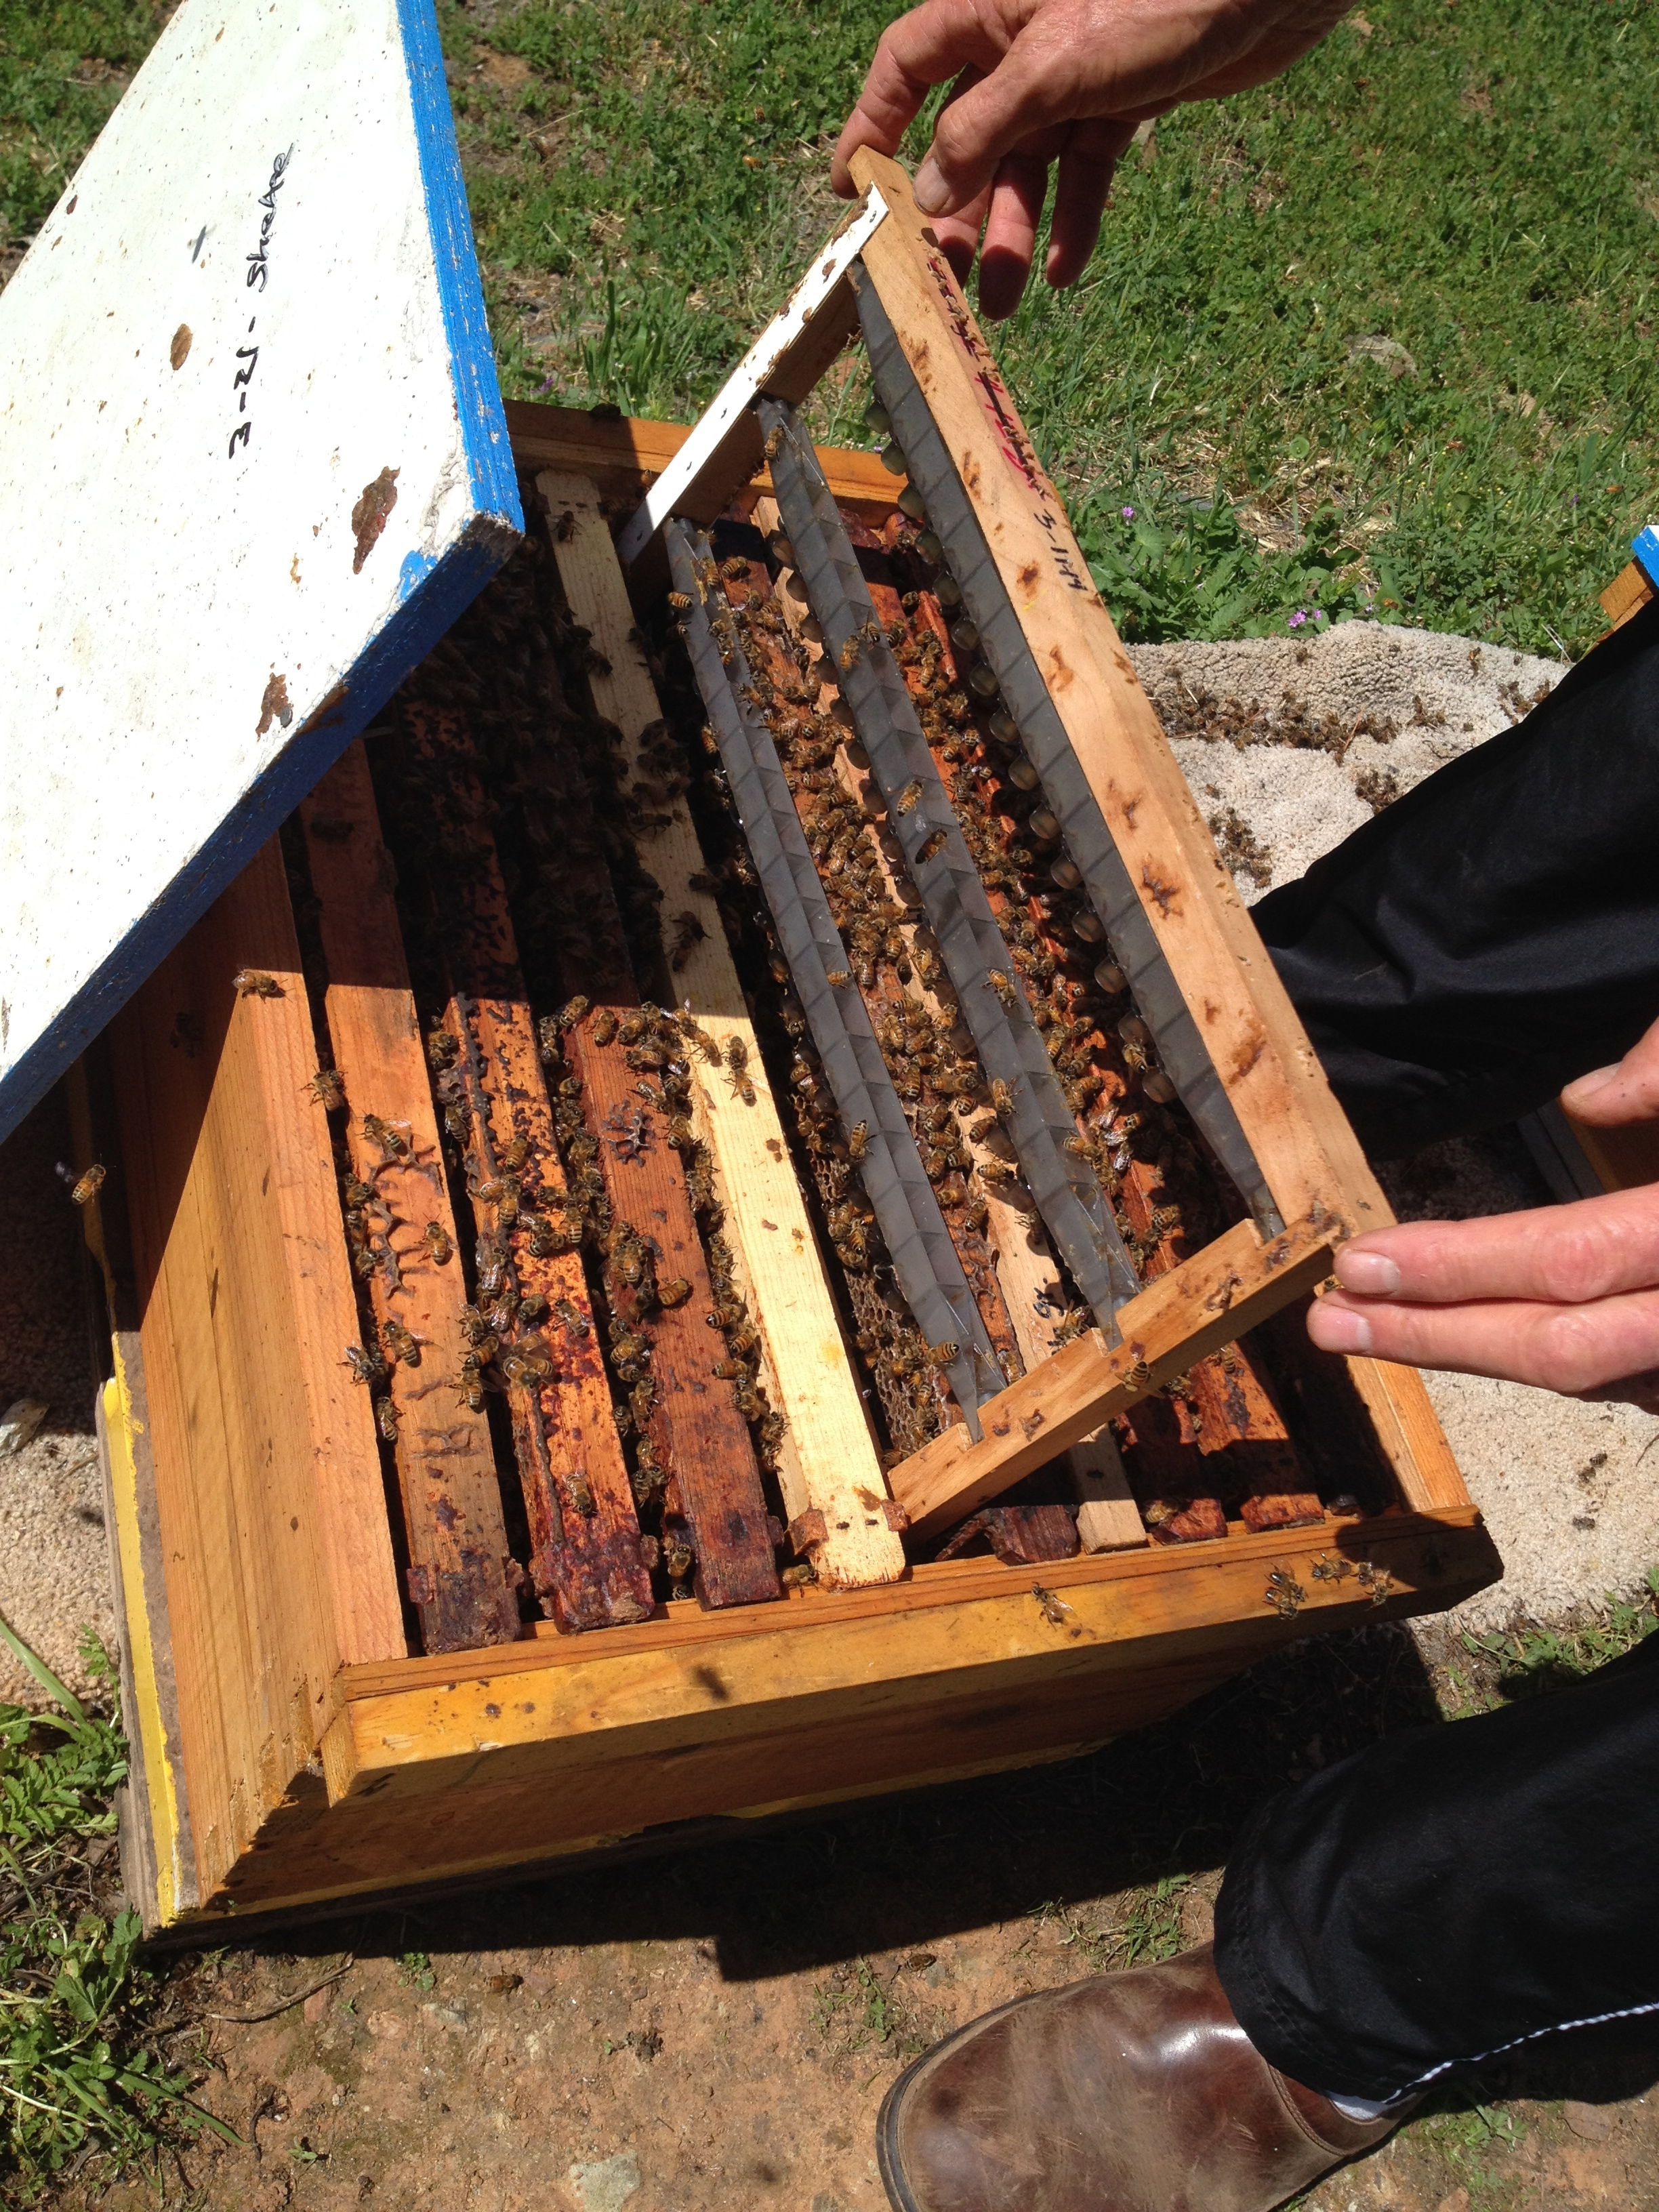 Placing the grafted queen cells in a nuc hive for the young nurse bees to rear.